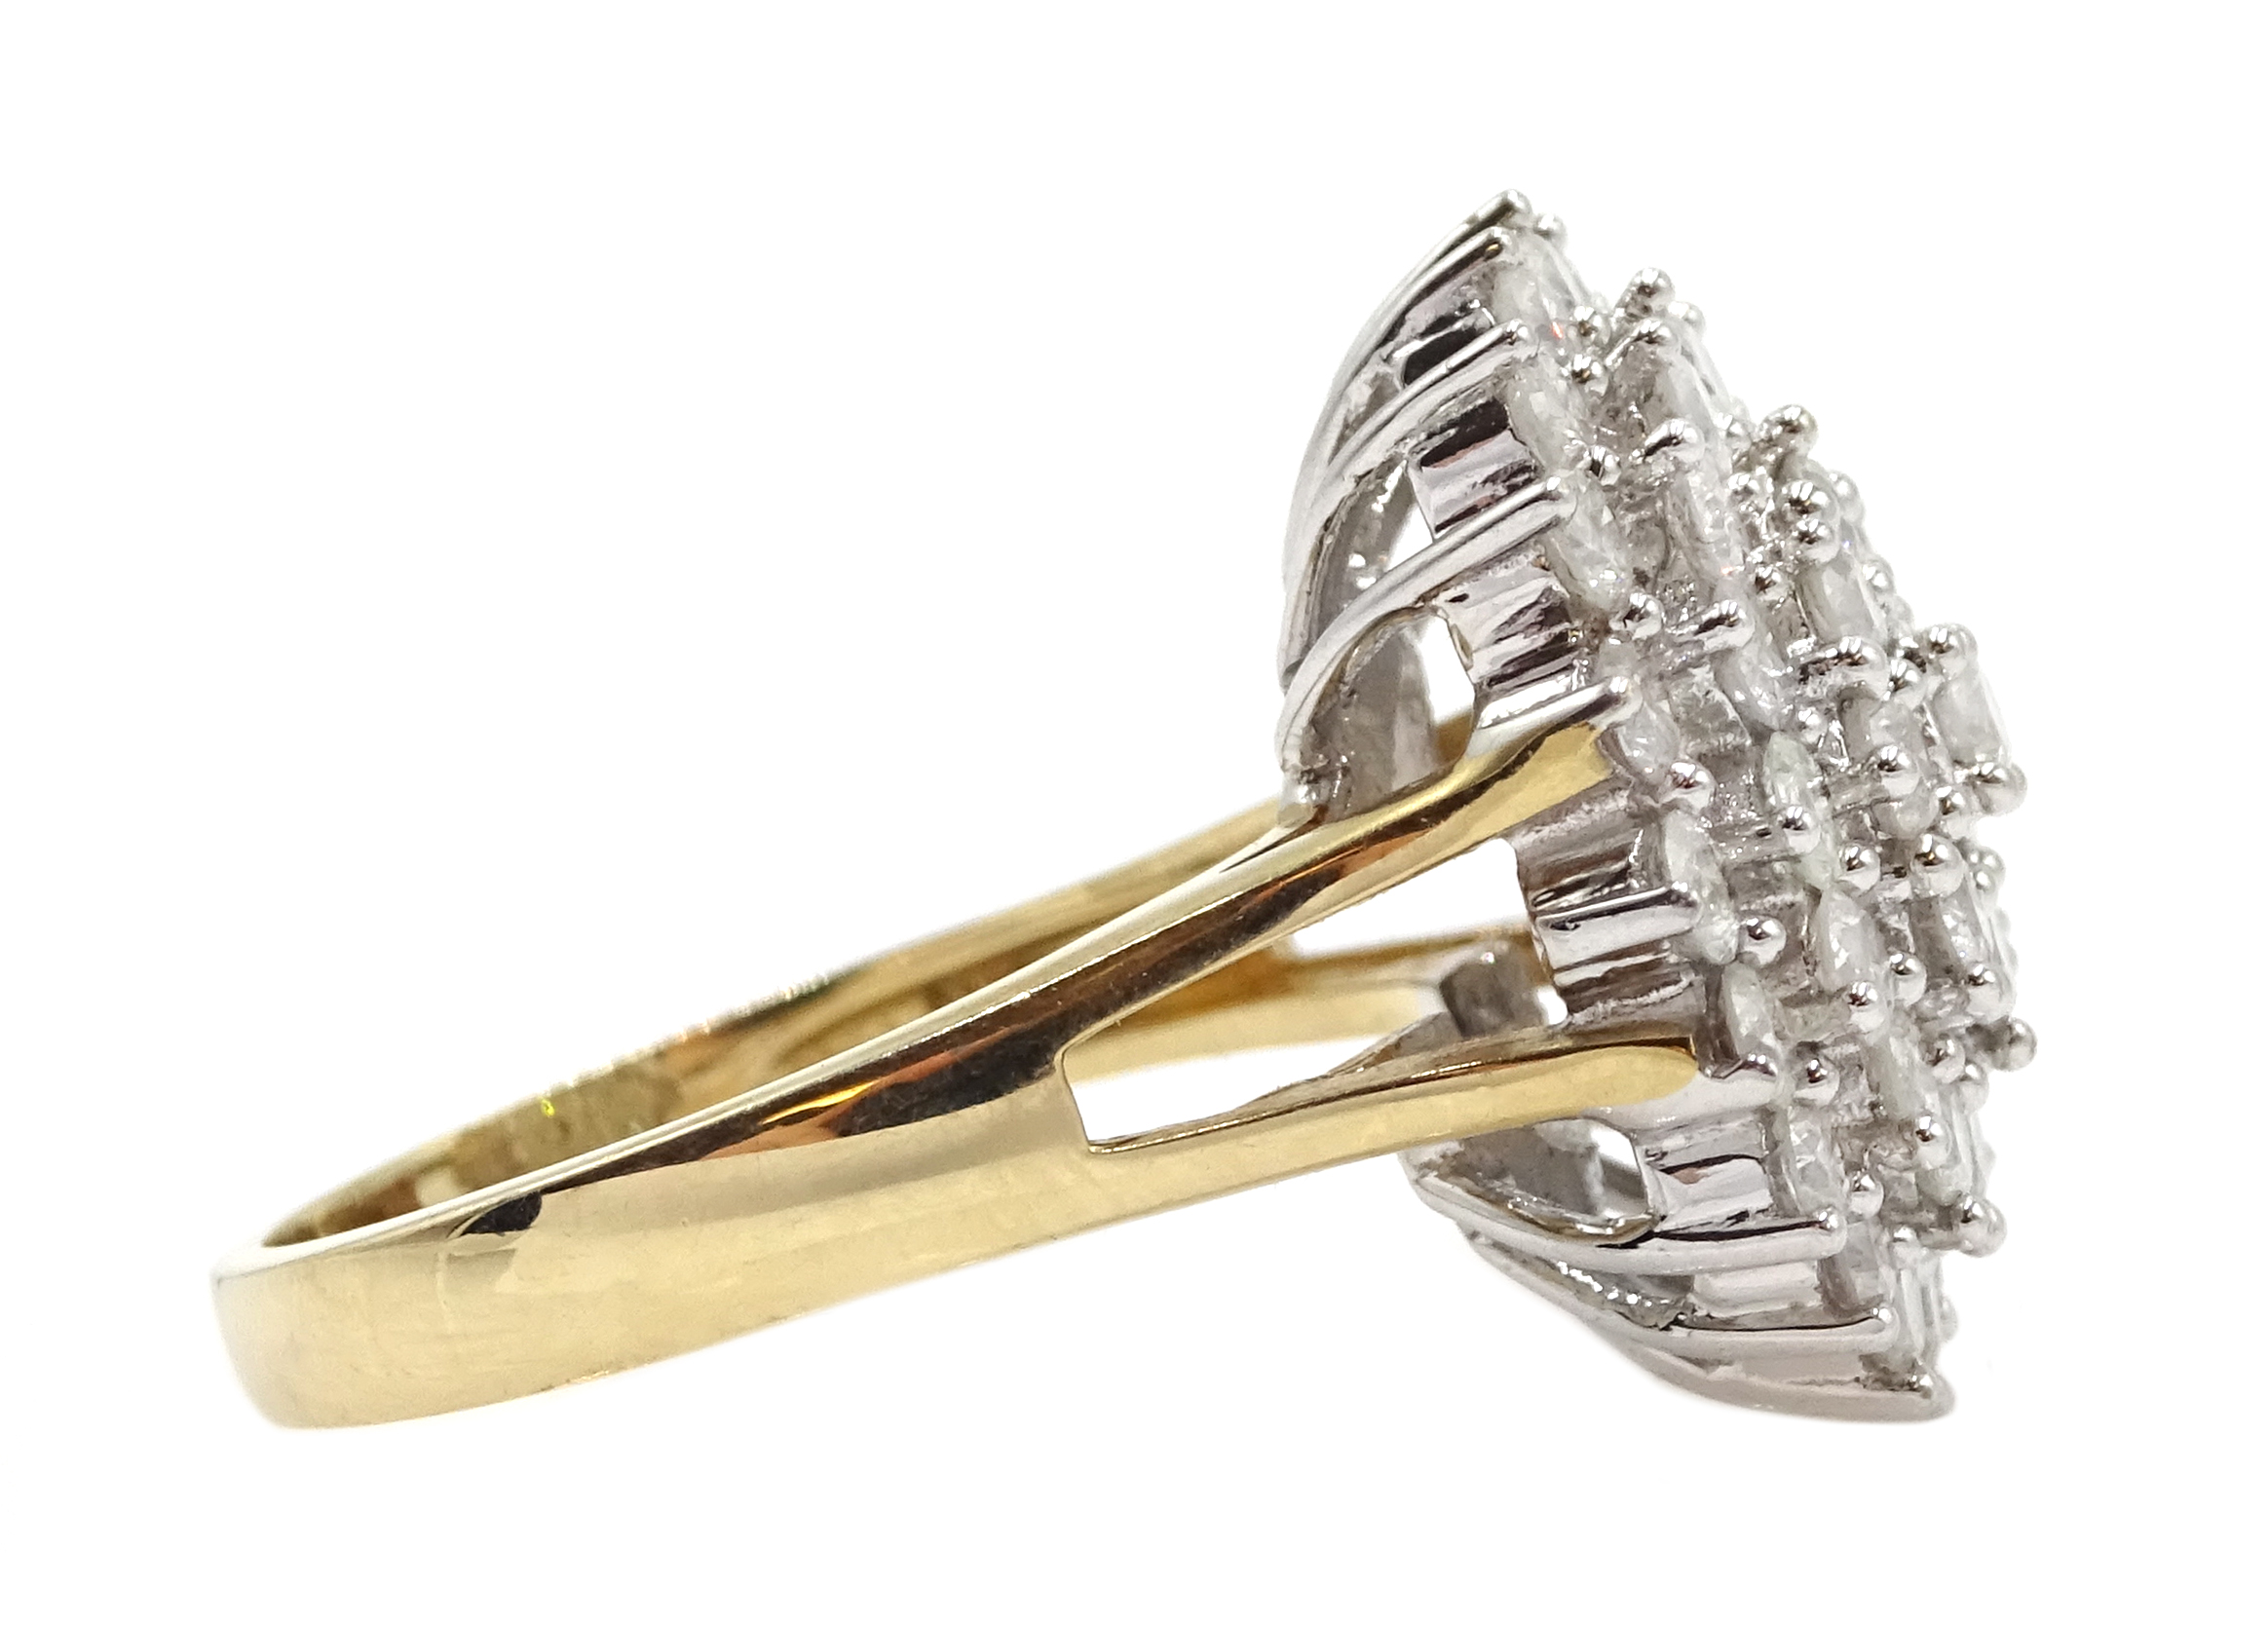 9ct gold cluster ring - Image 4 of 6